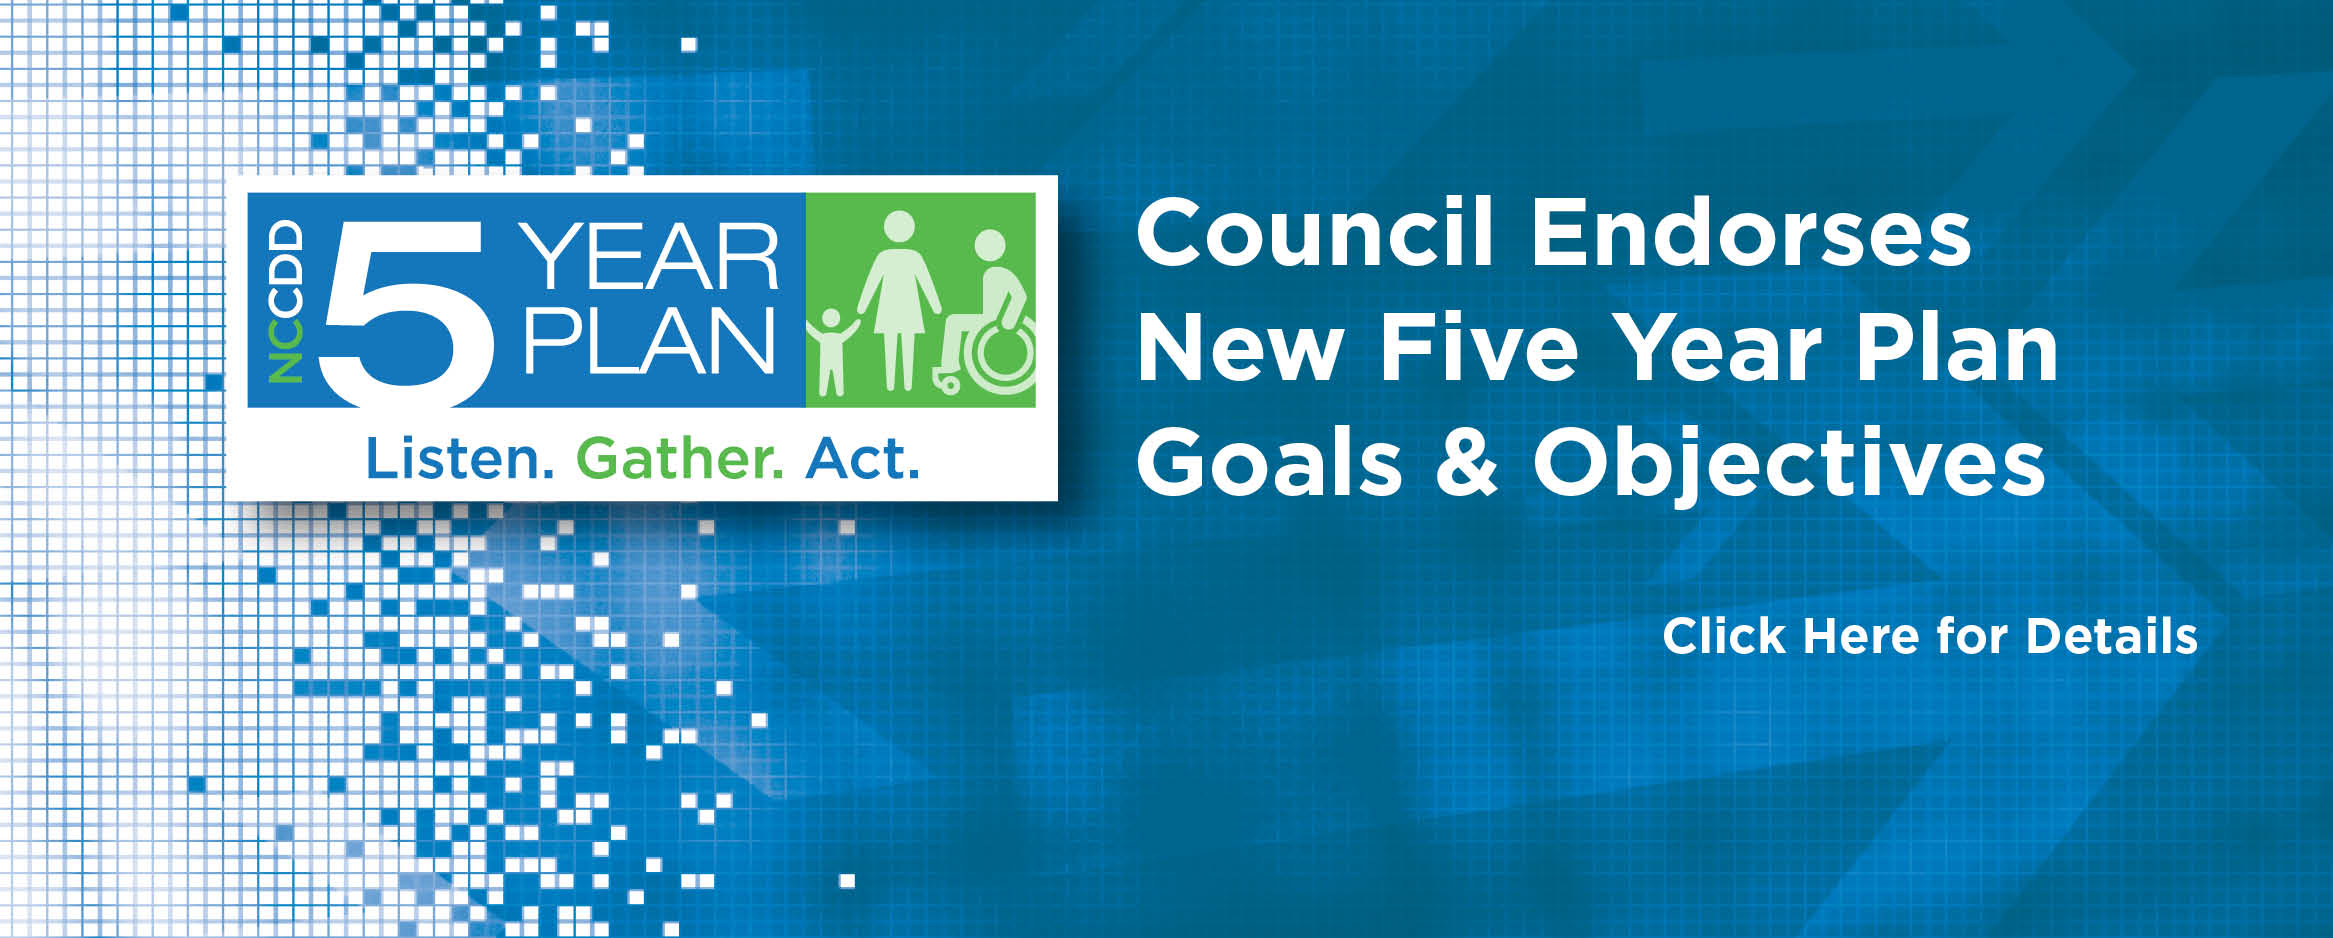 Council Endorses New Five Year Plan Goals & Objectives